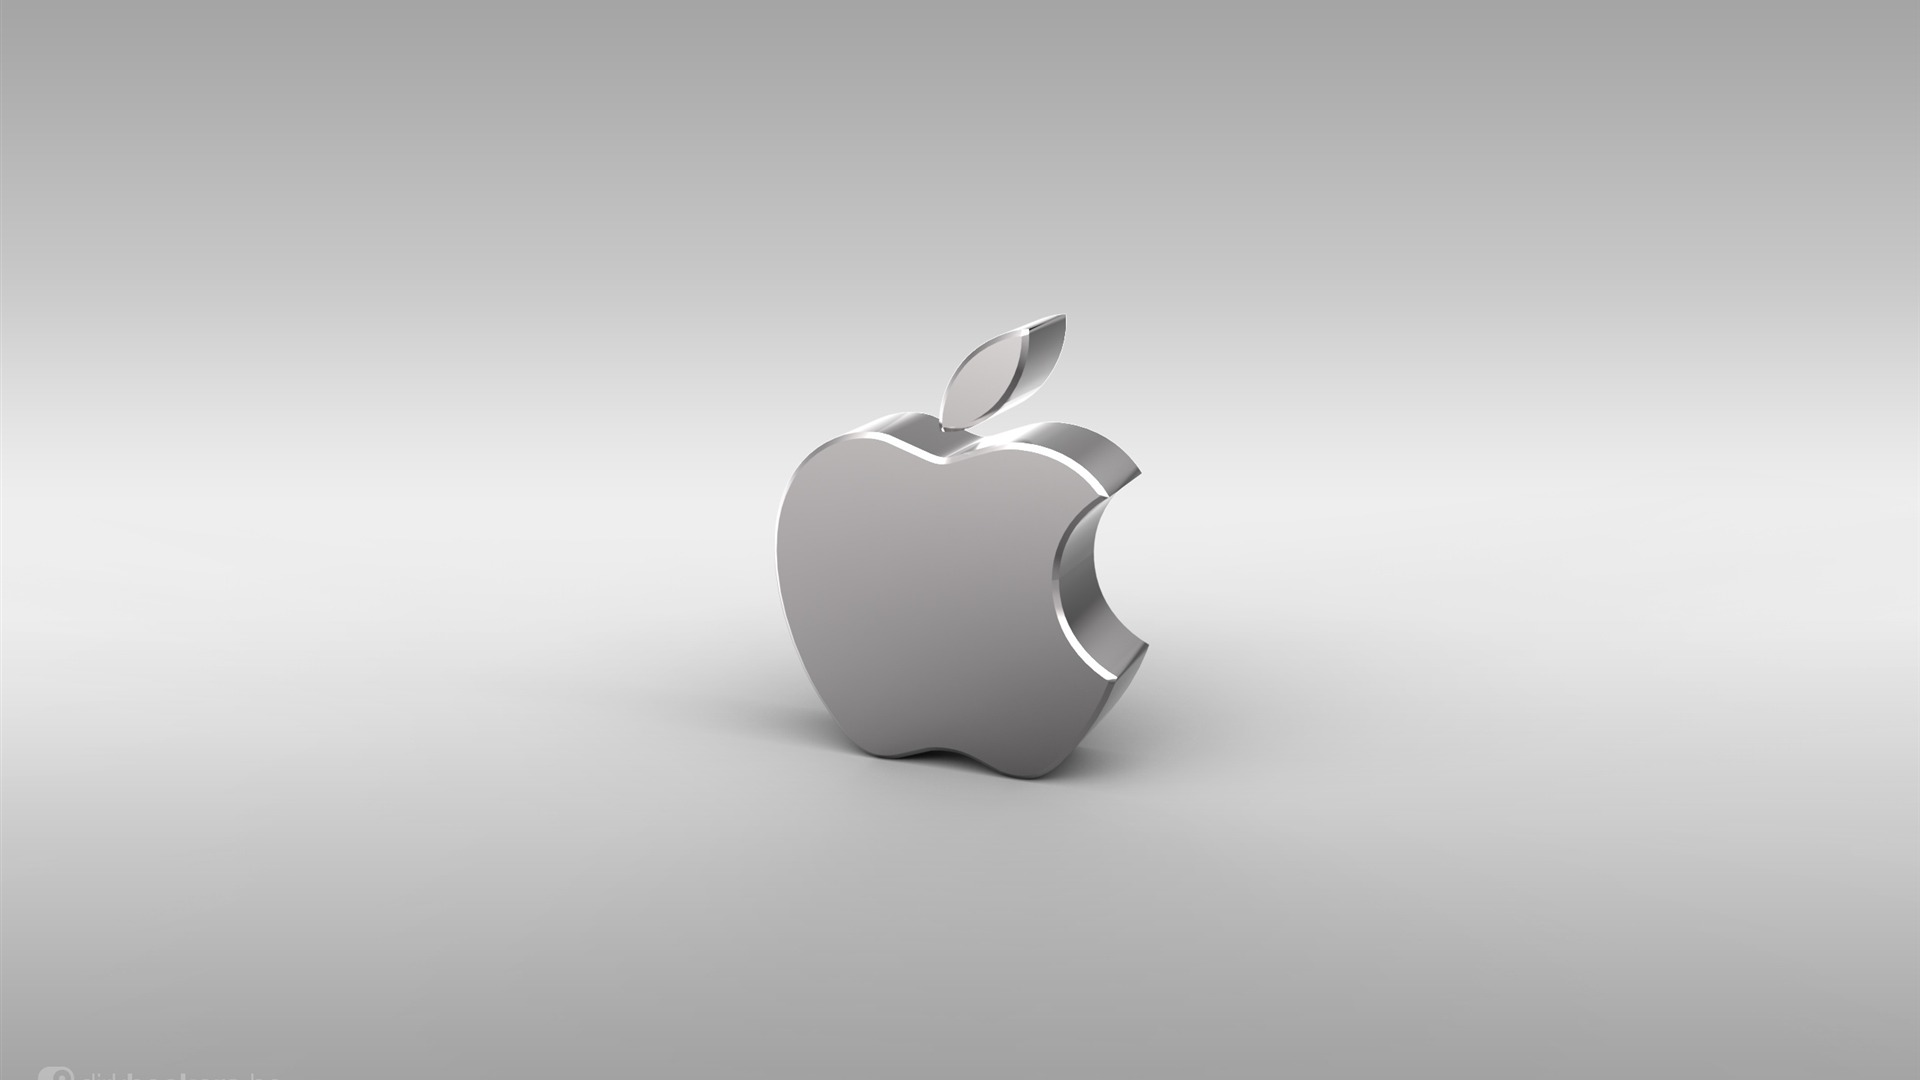 apple desktop wallpaper high resolution - sf wallpaper